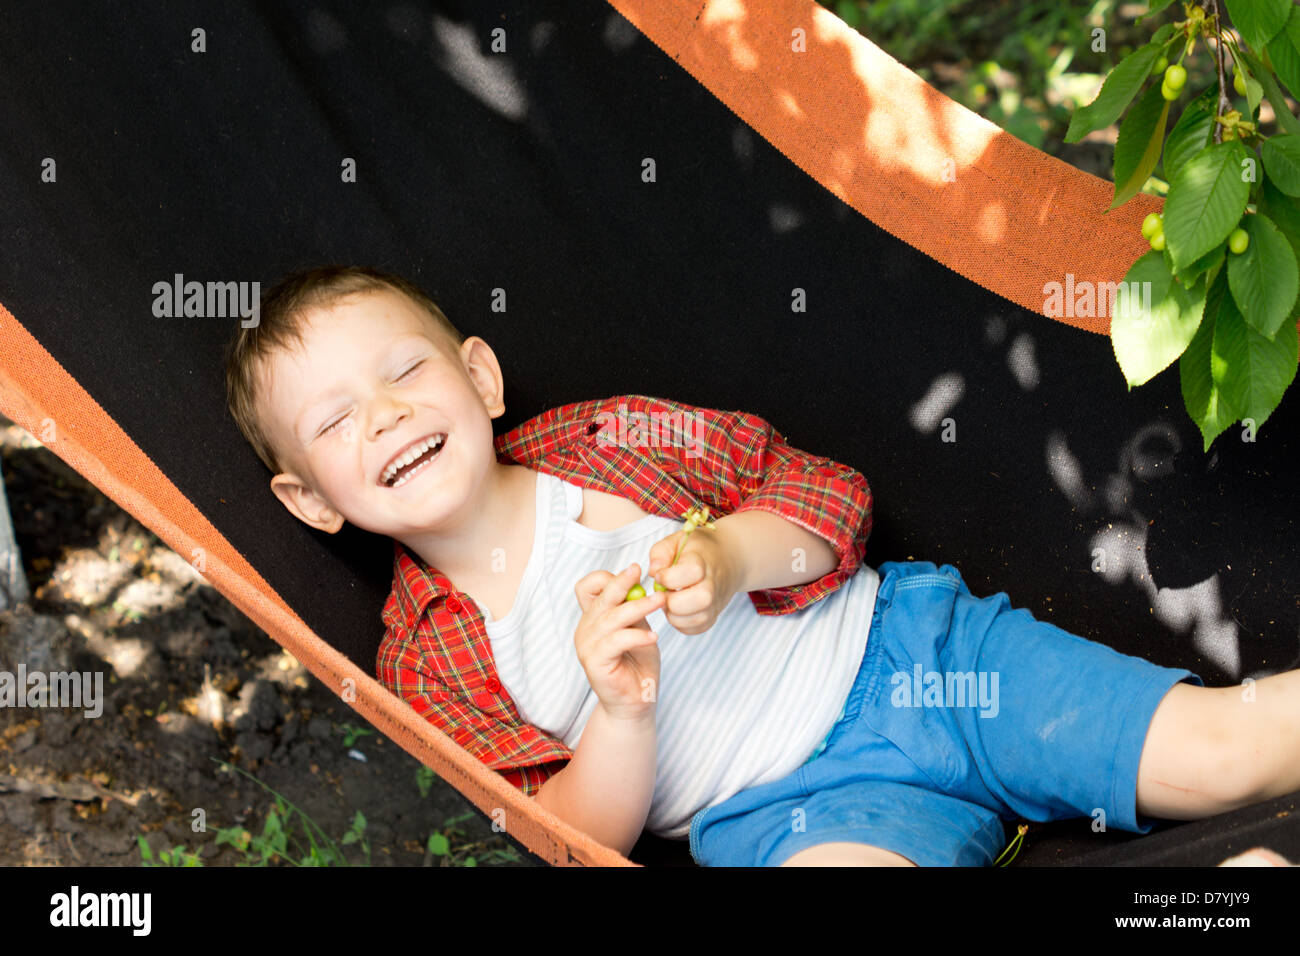 Laughing little boy lying on his back in a hammock under a shady tree enjoying the sunny spring weather Stock Photo